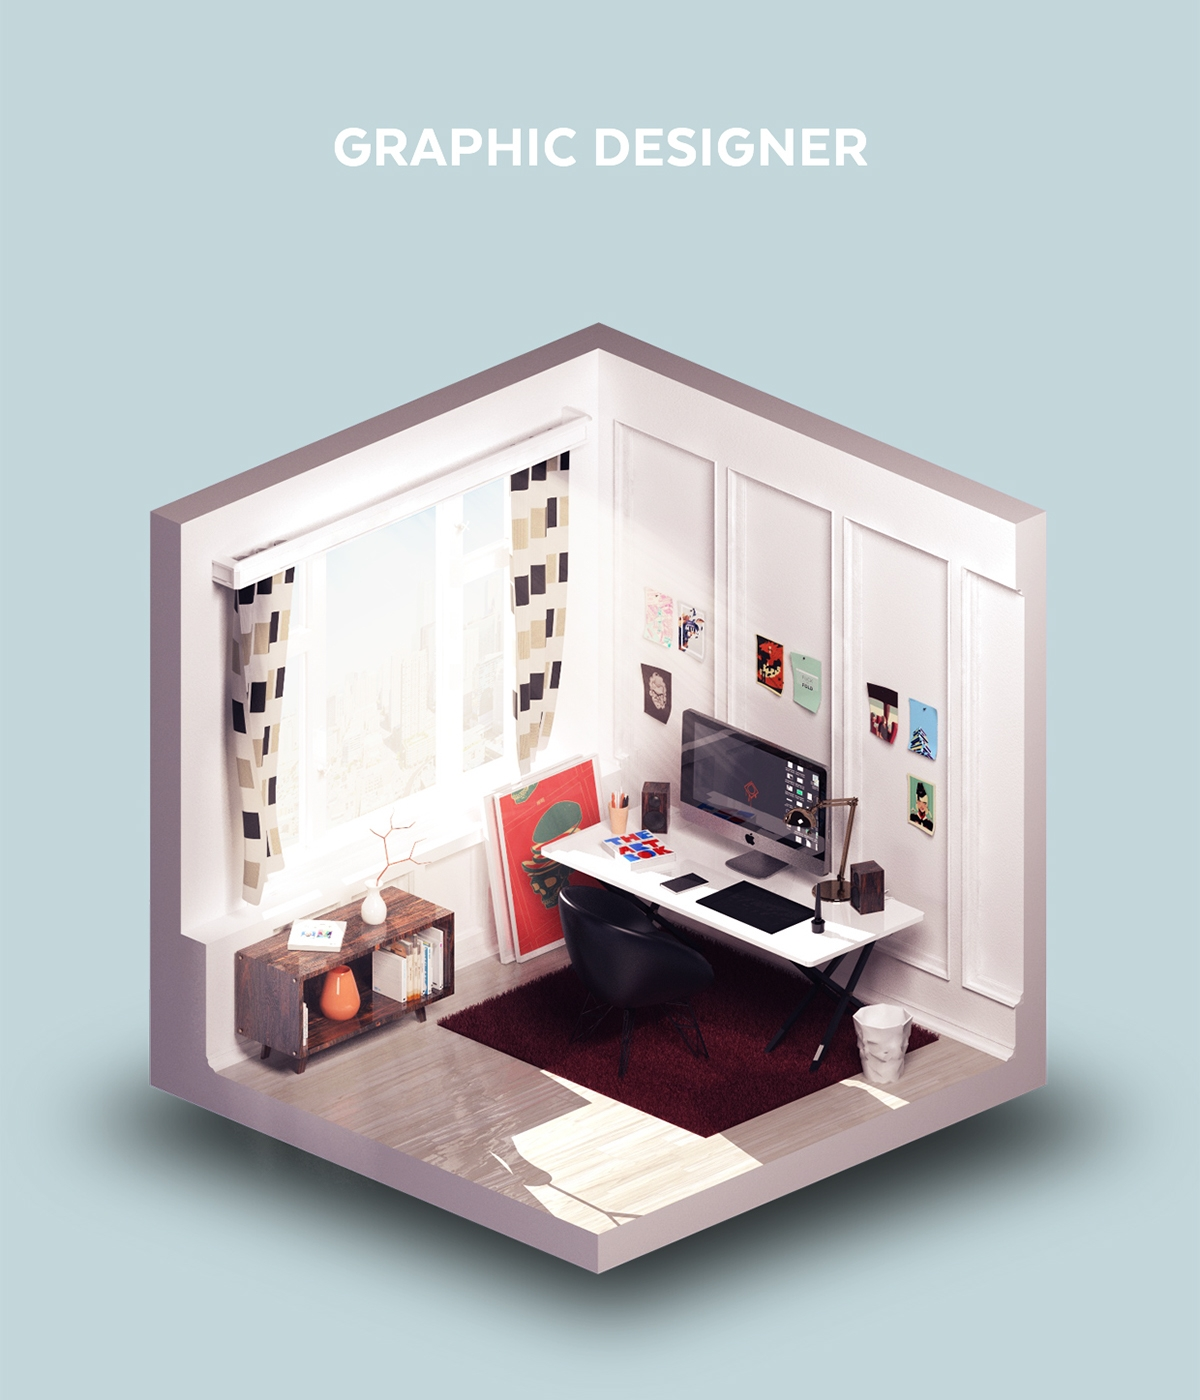 02-Room-of-a-Graphic-Designer-Petr-Kollarcik-Digital-Interiors-Design-and-Modern-Nomads-illustrations-www-designstack-co